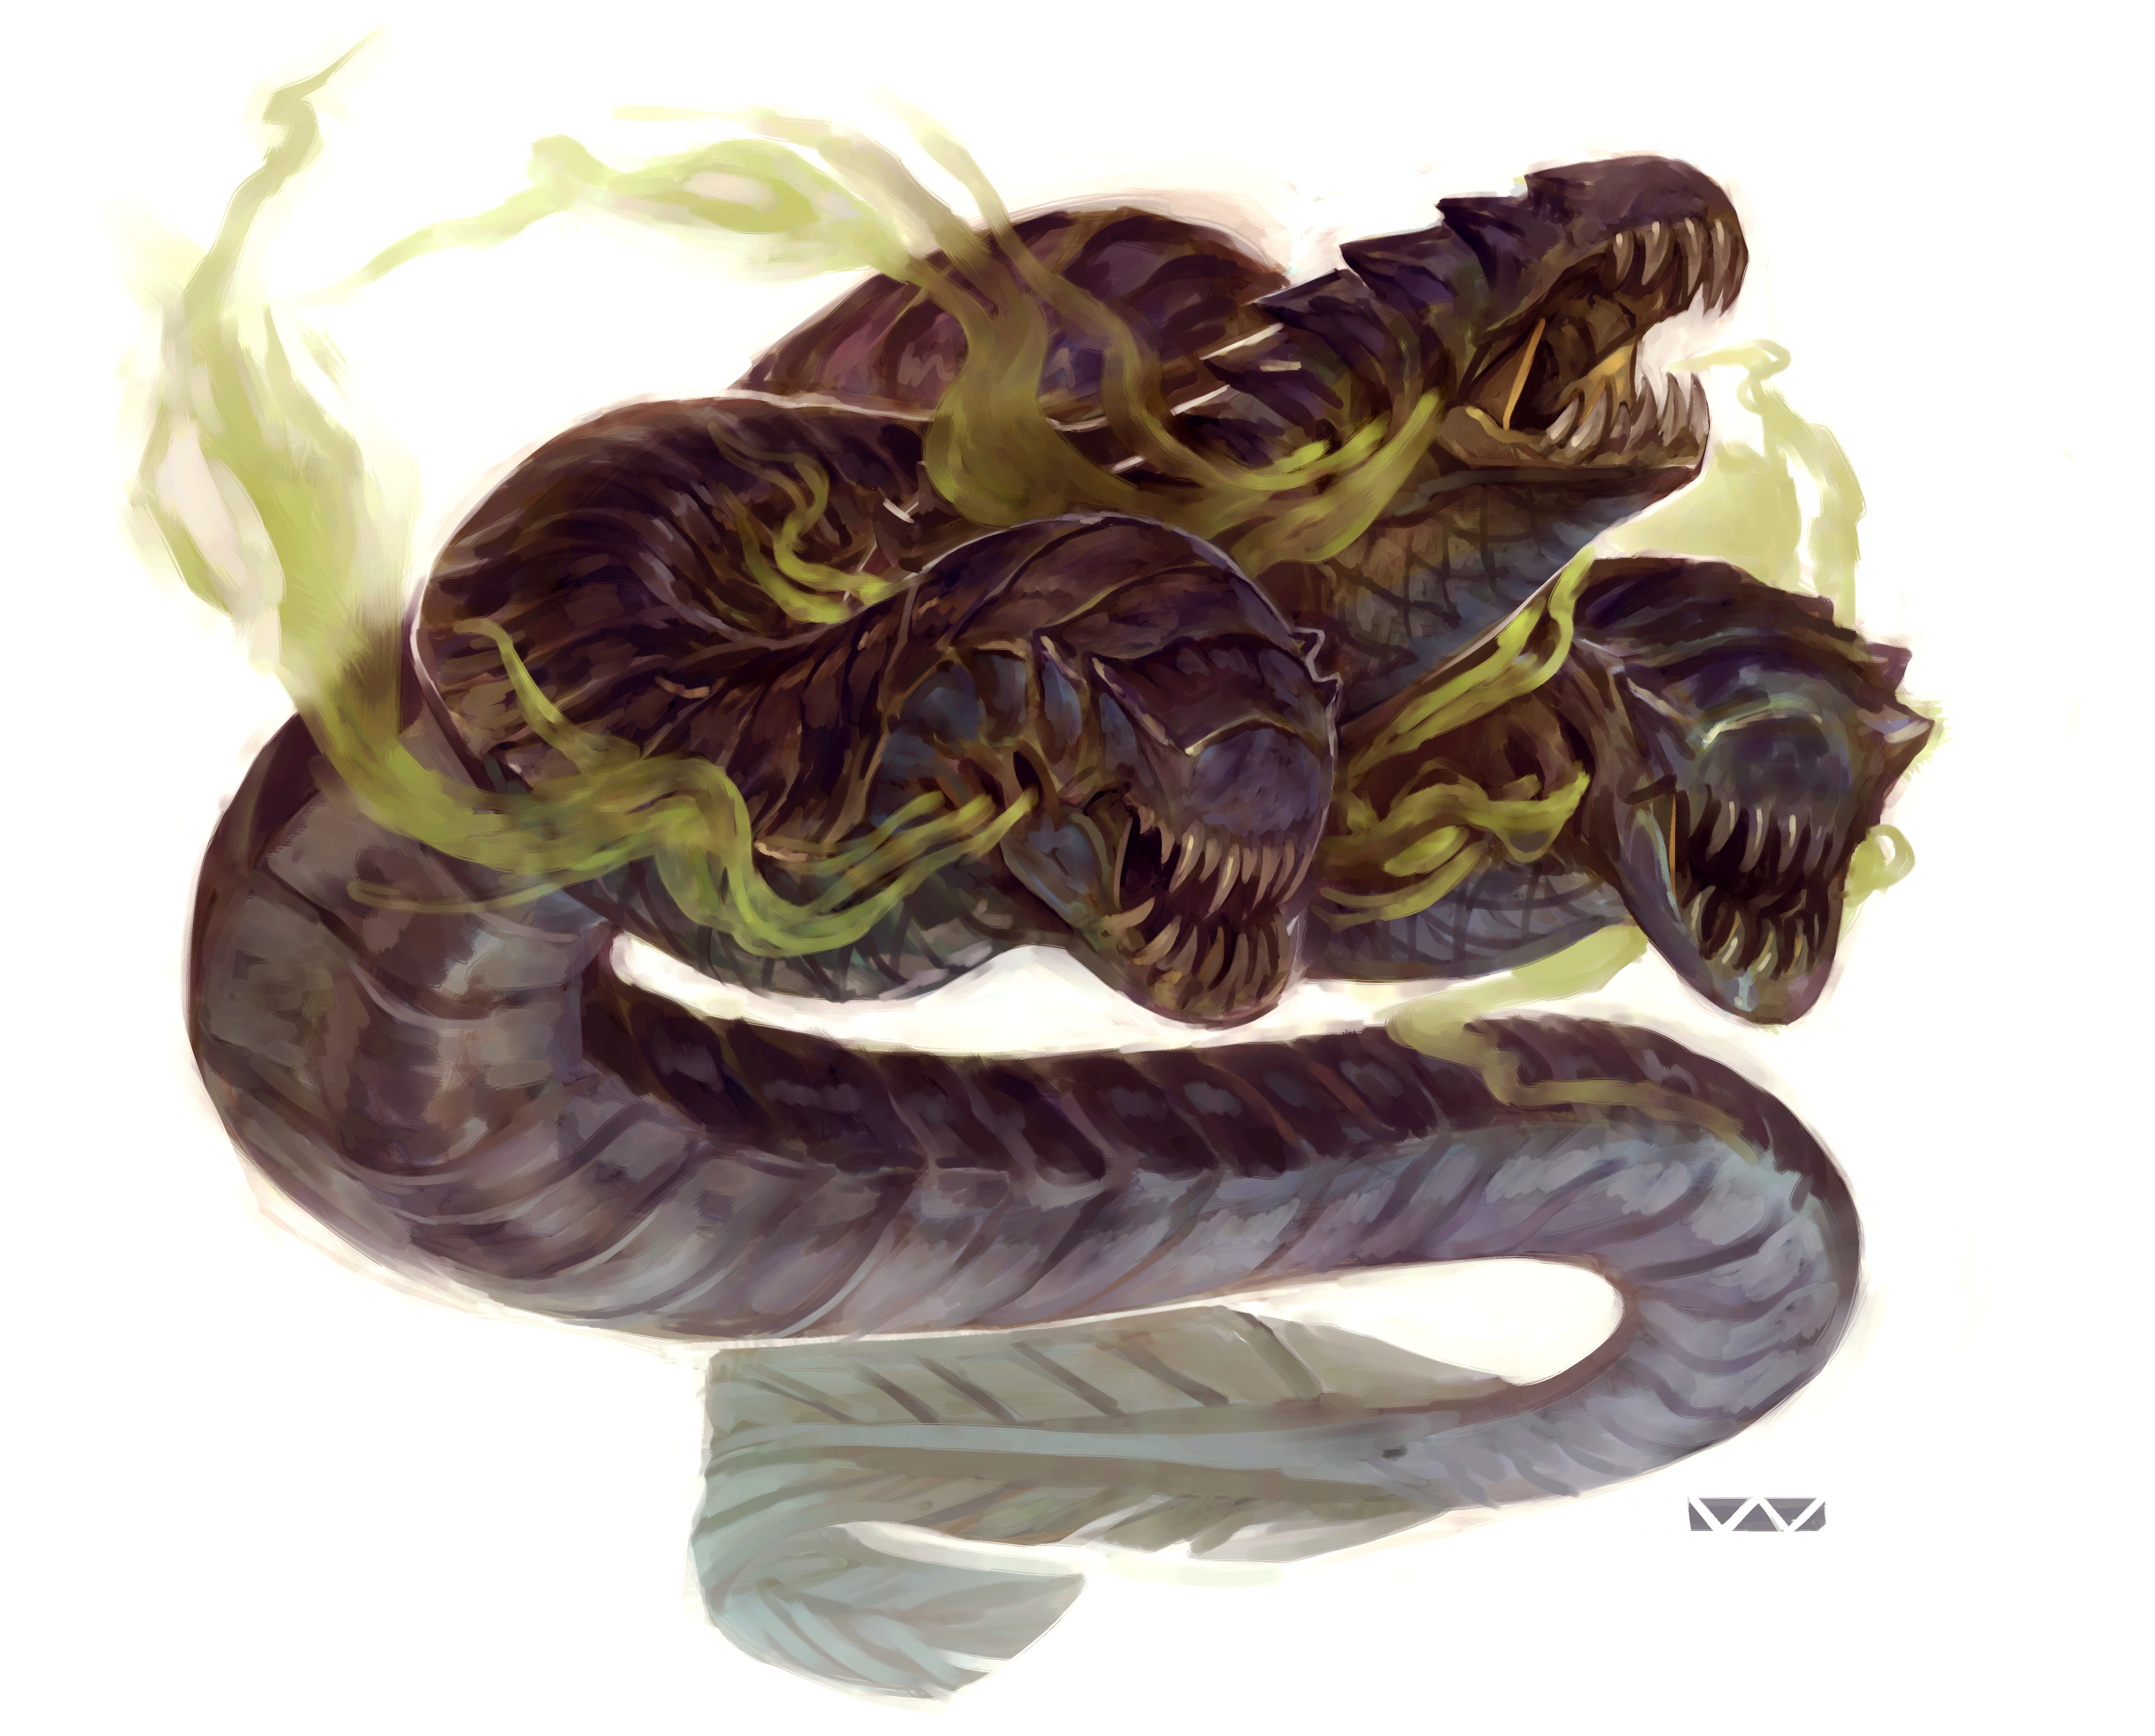 """stephen-wood """"Gorgon Eel"""" - by Stephen Wood Dungeon Master's Guild """"Angler: a Ranger's Path"""" (2018-02) © Wizards of the Coast e dell'autore, tutti i diritti riservati"""